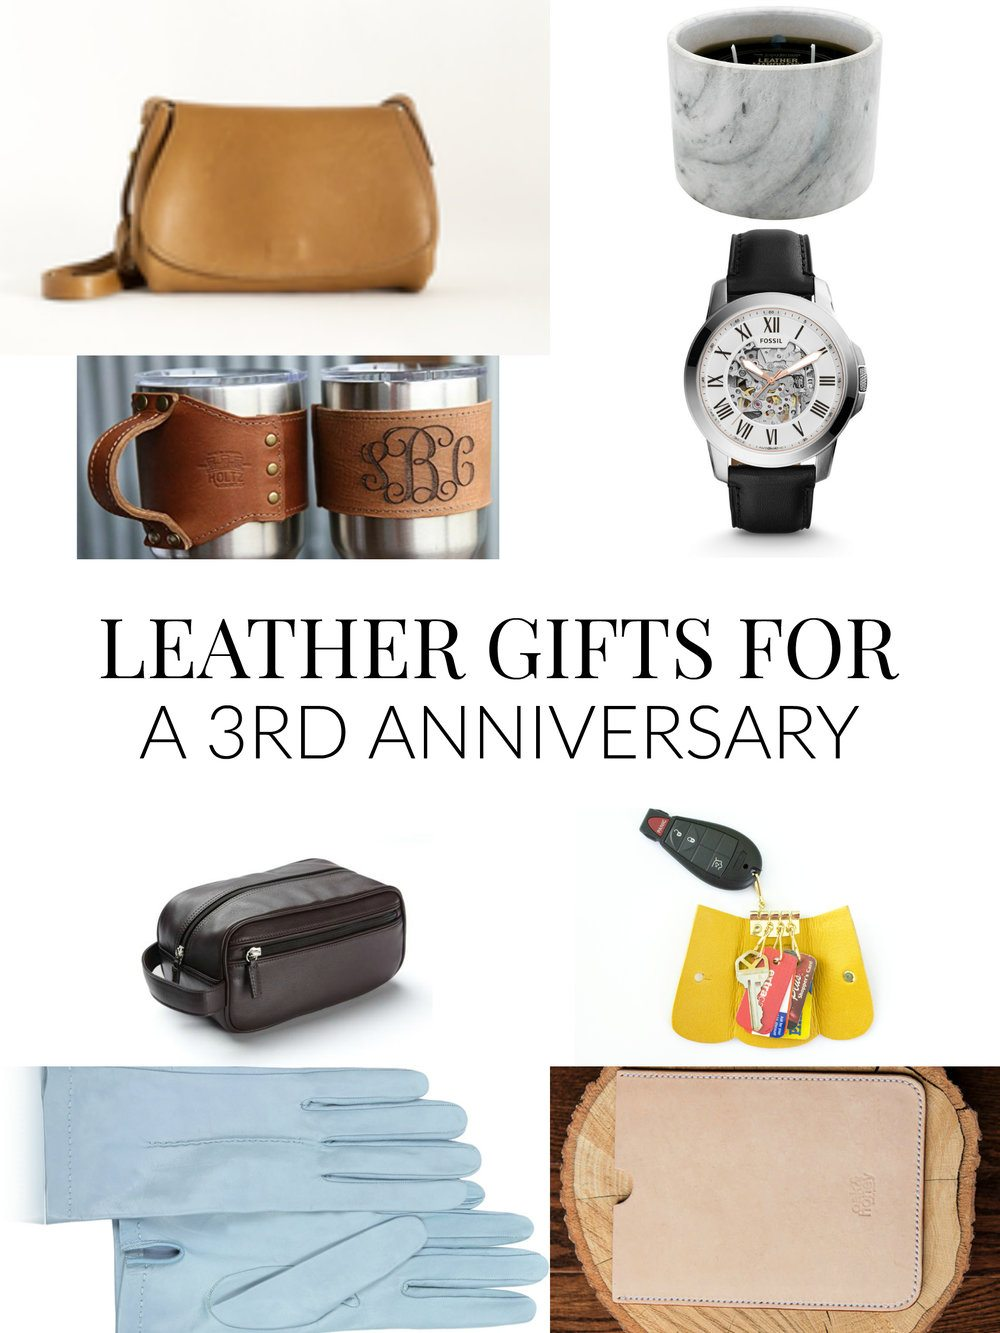 A roundup of leather gift for a 3rd Anniversary and includes leather gifts for her, leather gifts for him, and leather gifts for both. // www.ElleTalk.com